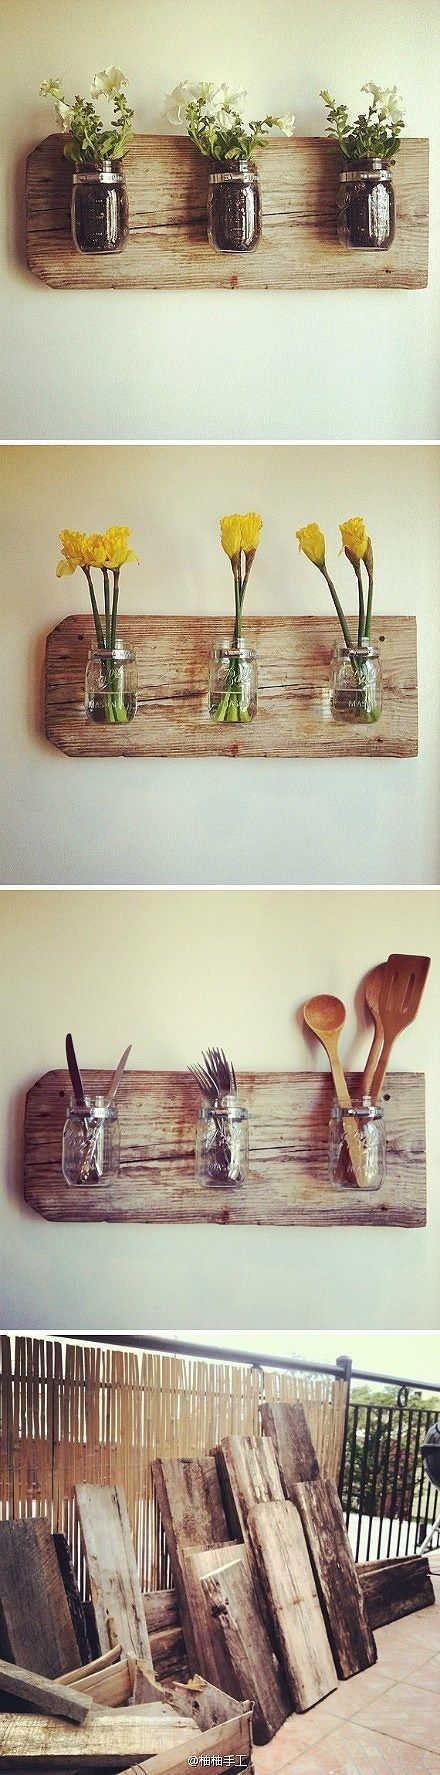 DIY Home Decor with Mason Jars and Reclaimed Wood